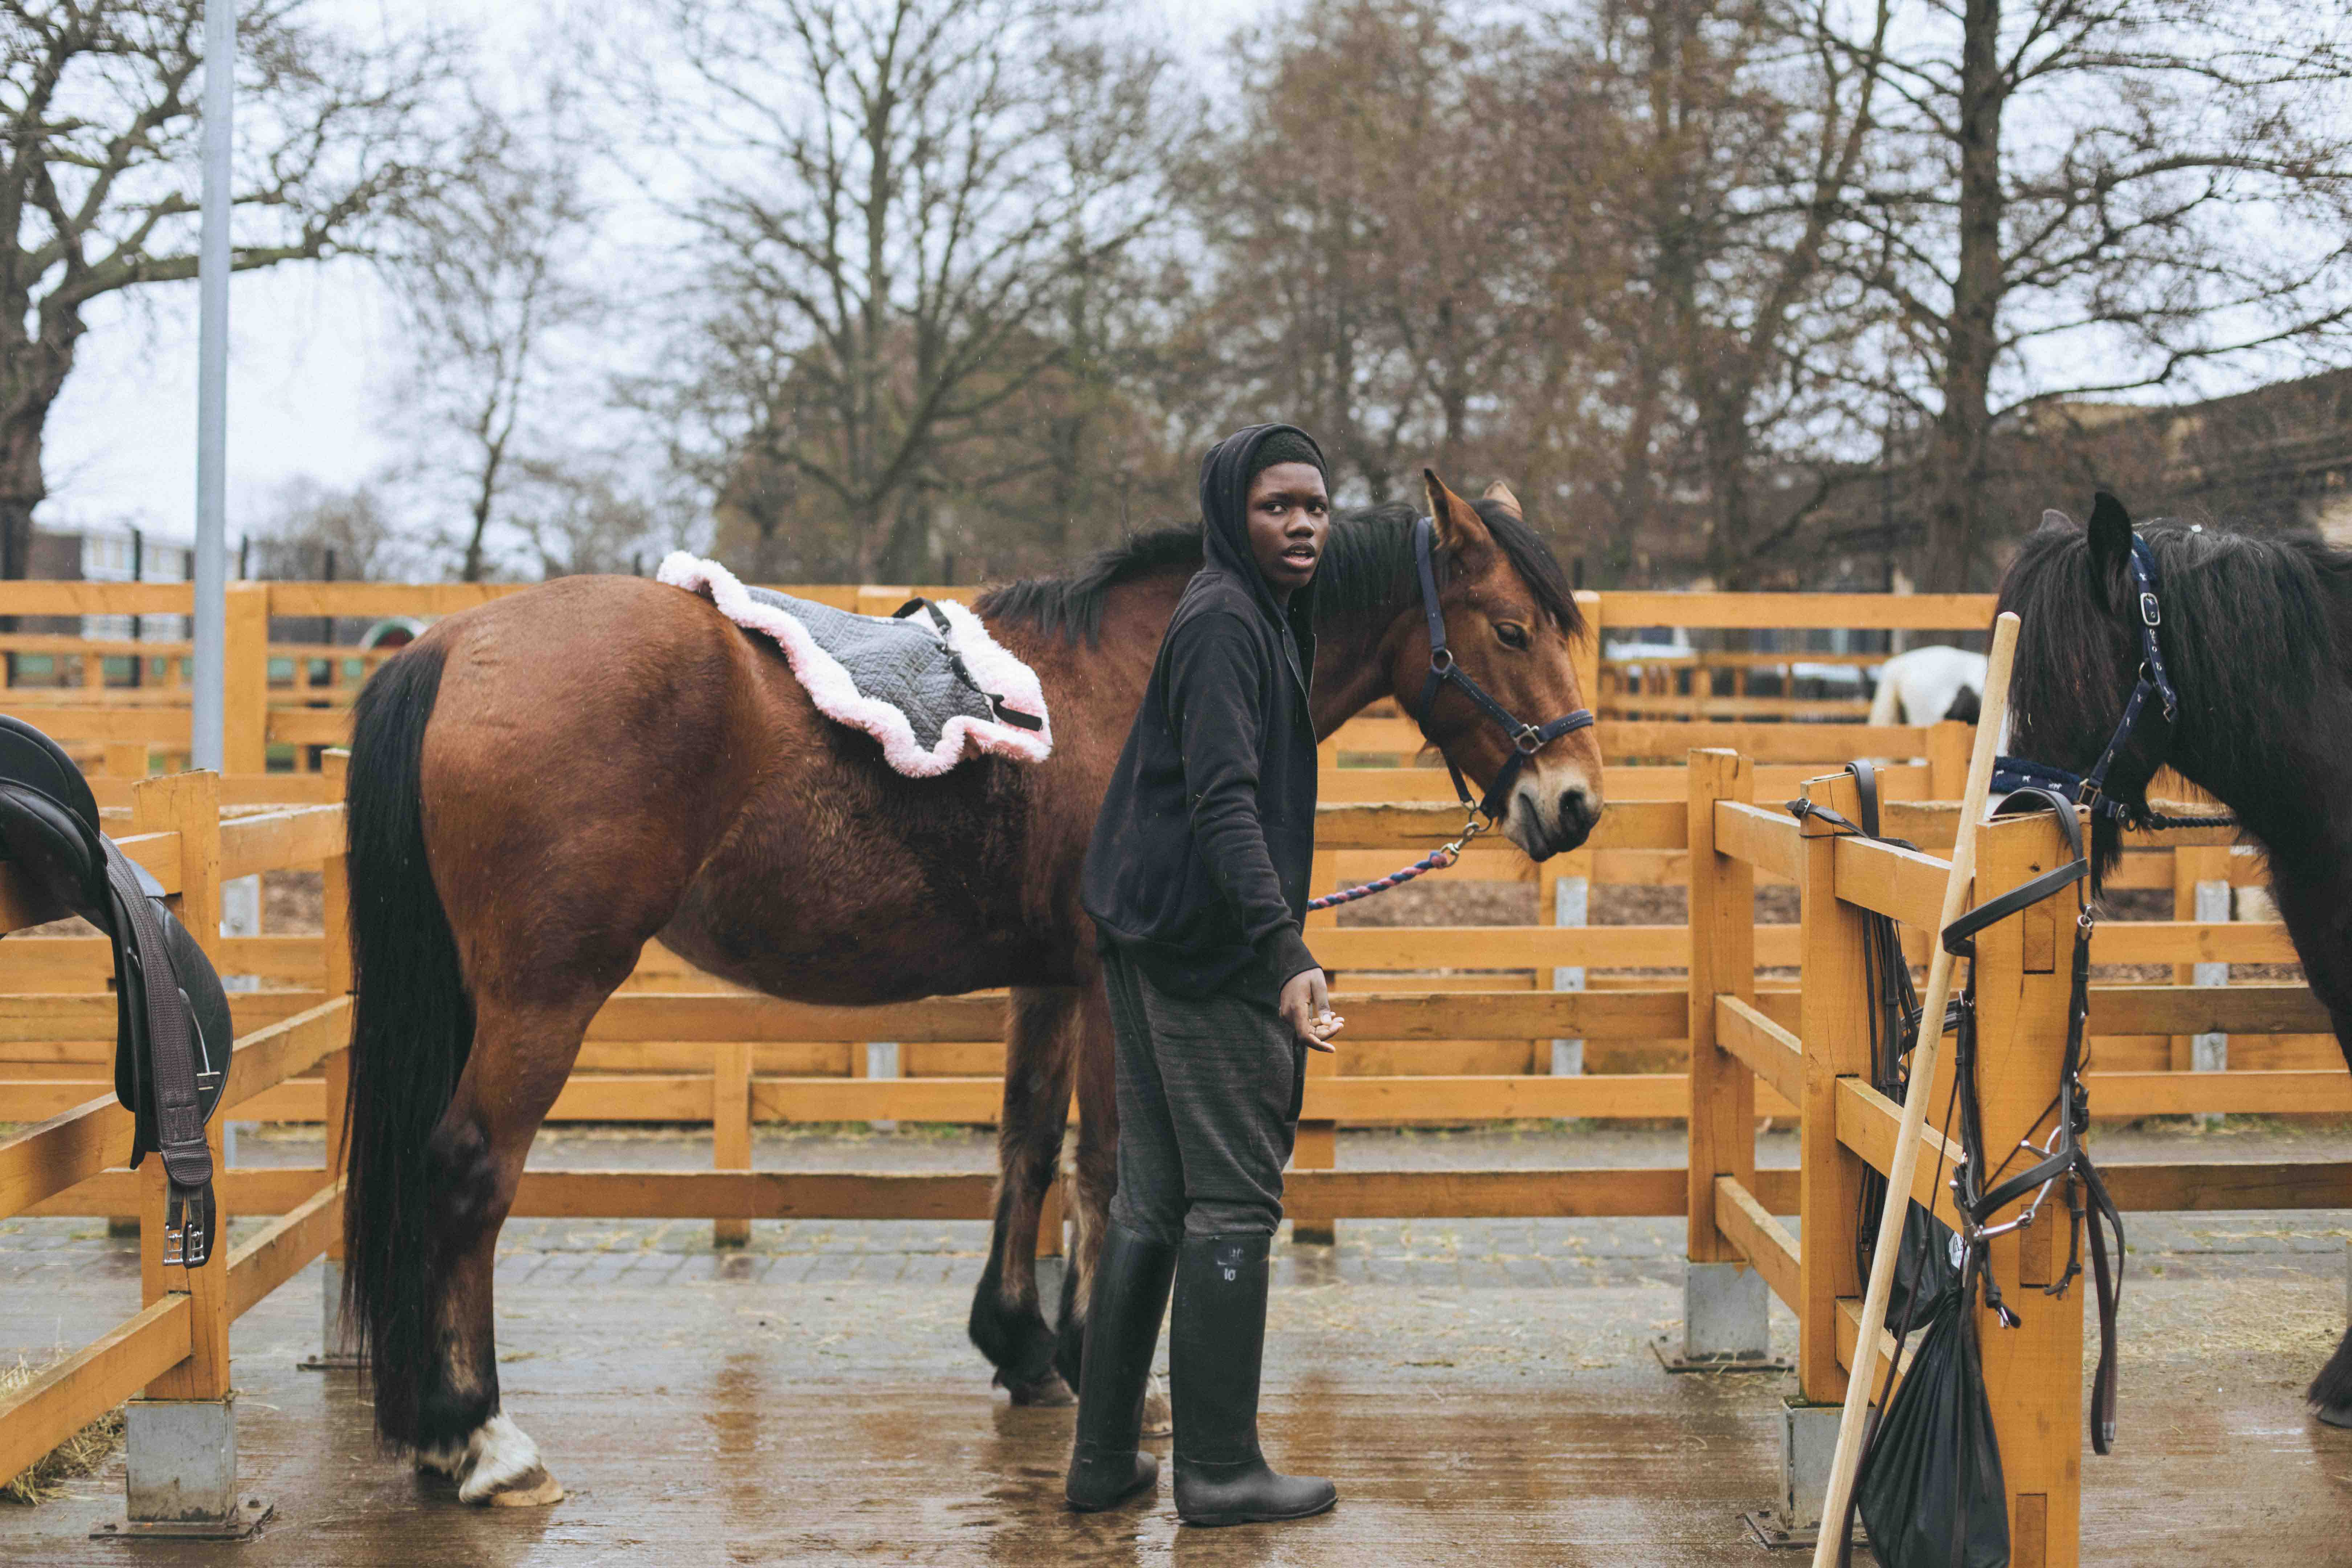 The horse club offering a safe haven for young Londoners